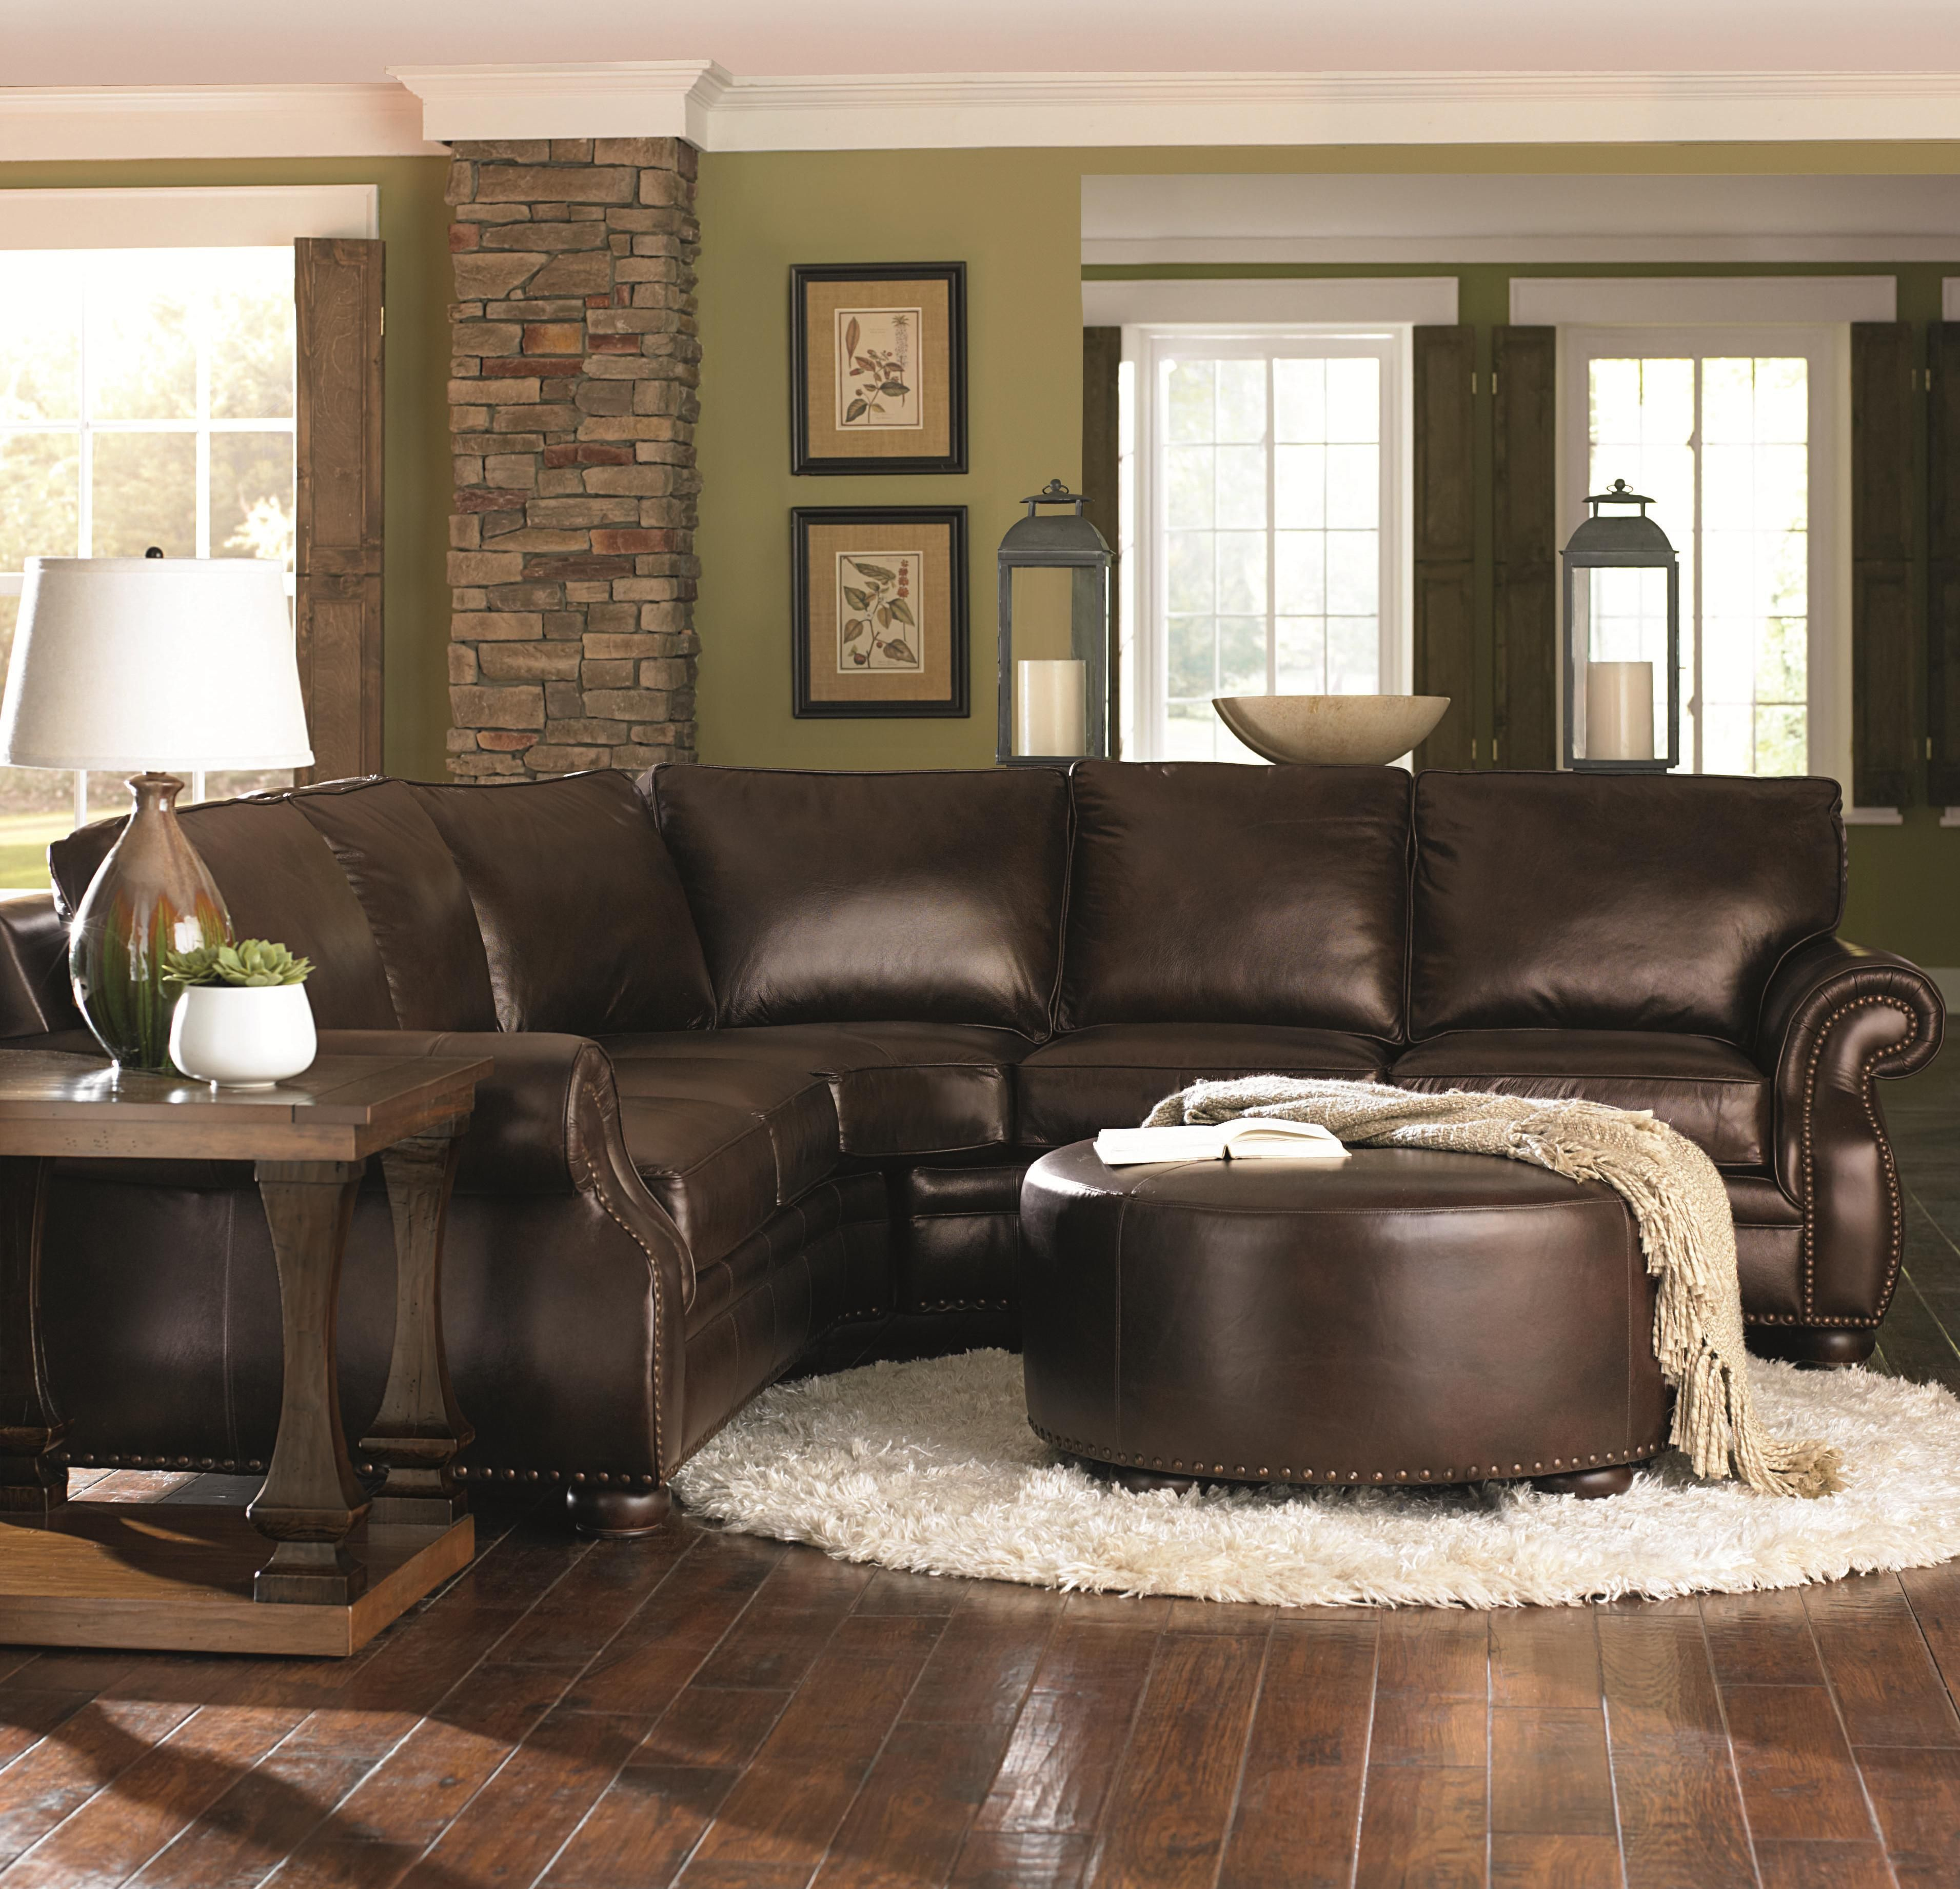 Leather Sectional Living Room Ideas Contemporary Designs For Small Apartment Chocolate Brown W Round Ottoman Love Everything About This Colors